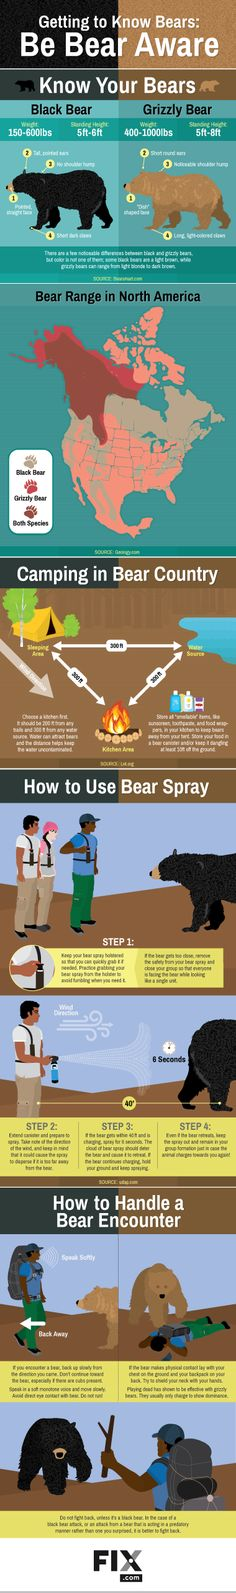 Read on to find out how to handle a bear encounter, whether it's a black bear or a grizzly!